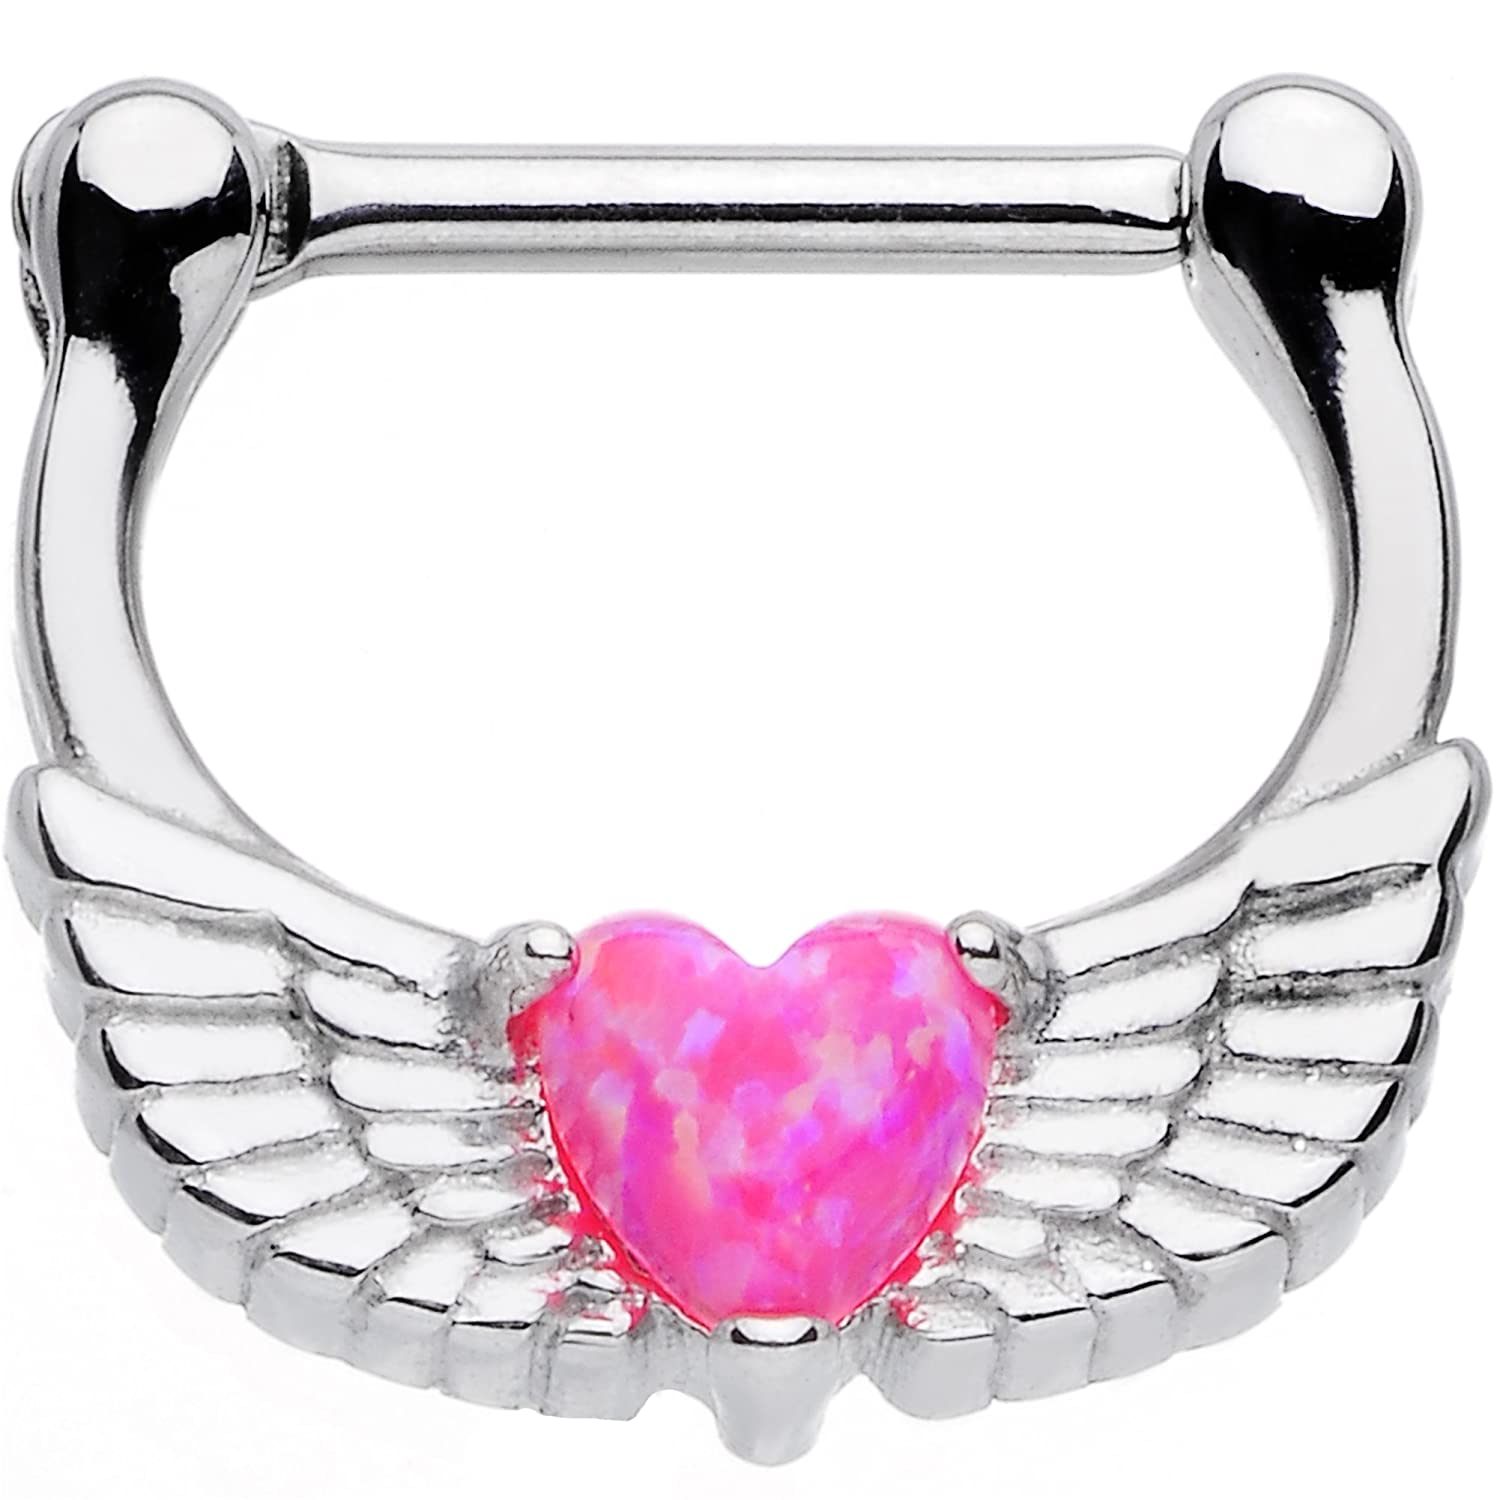 Body Candy Stainless Steel Iridescent Dark Pink Heart Angel Wing Septum Clicker 16 Gauge 5/16 57956